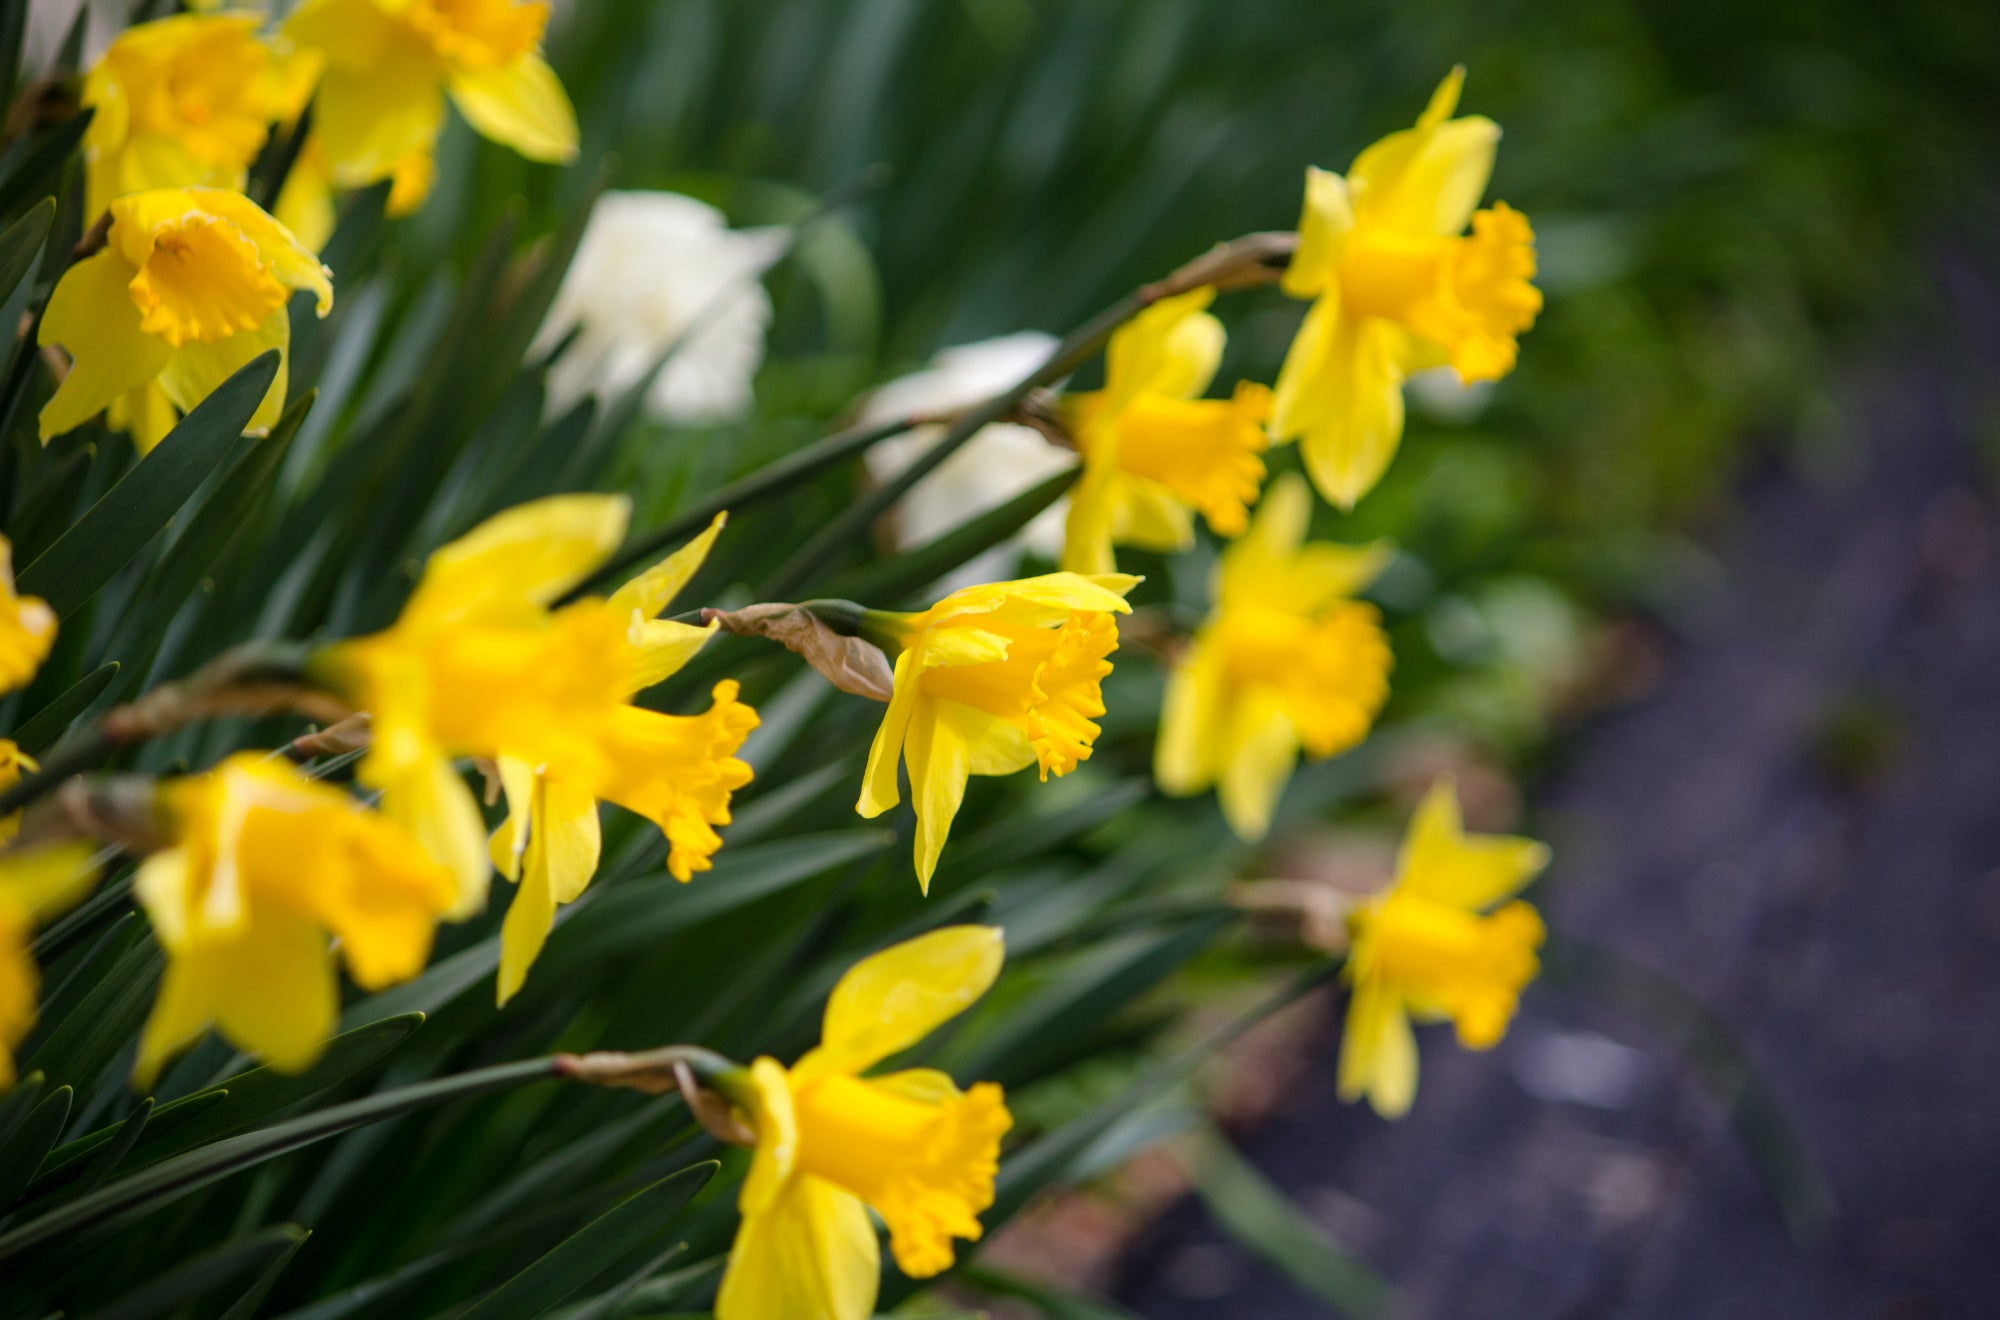 Daffodils are the perfect floral addition to any celebration or fresh new start | Talsam